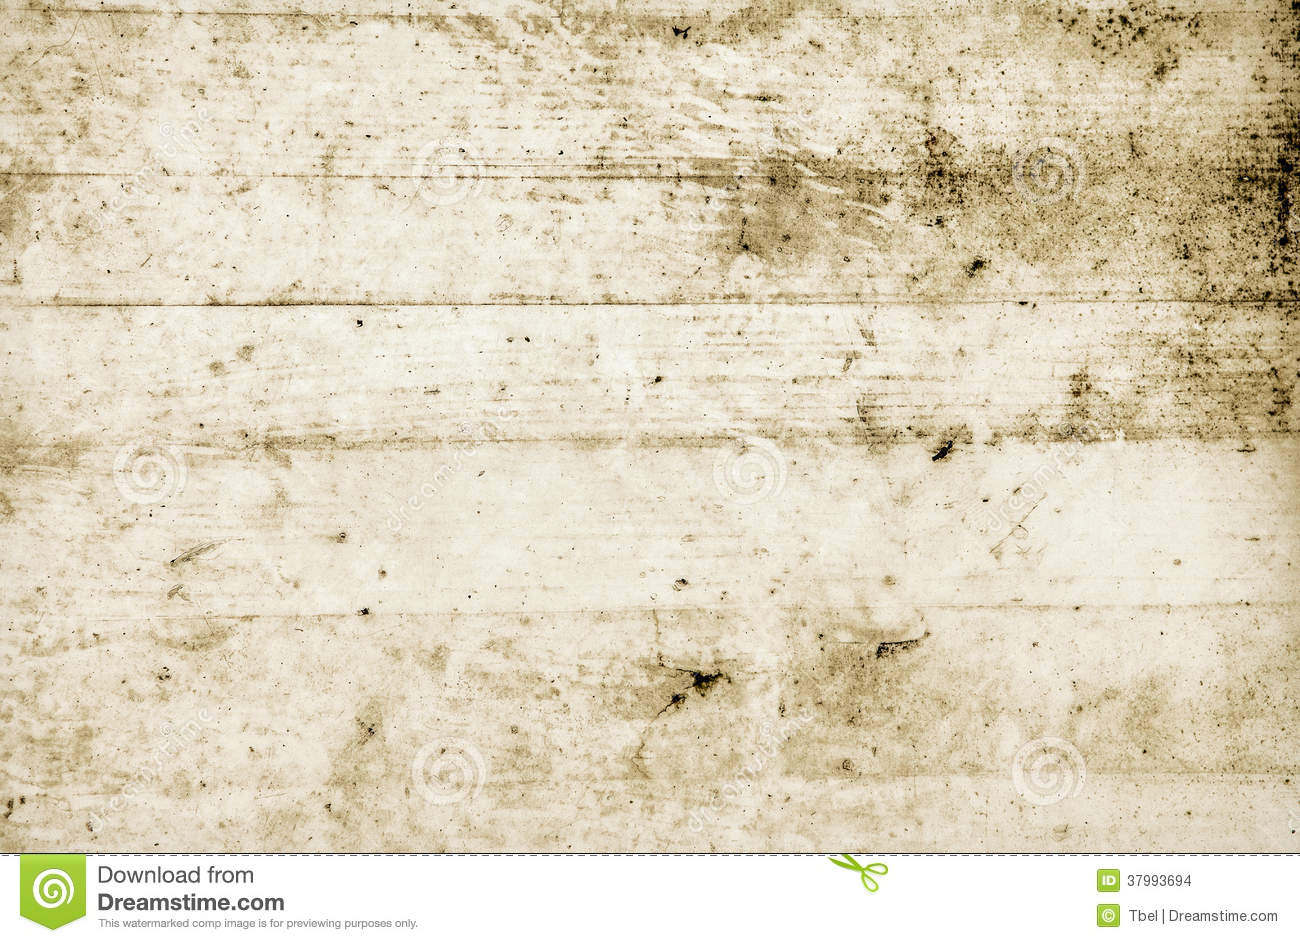 Wooden Weathered Background Stock Images - Image: 37993694